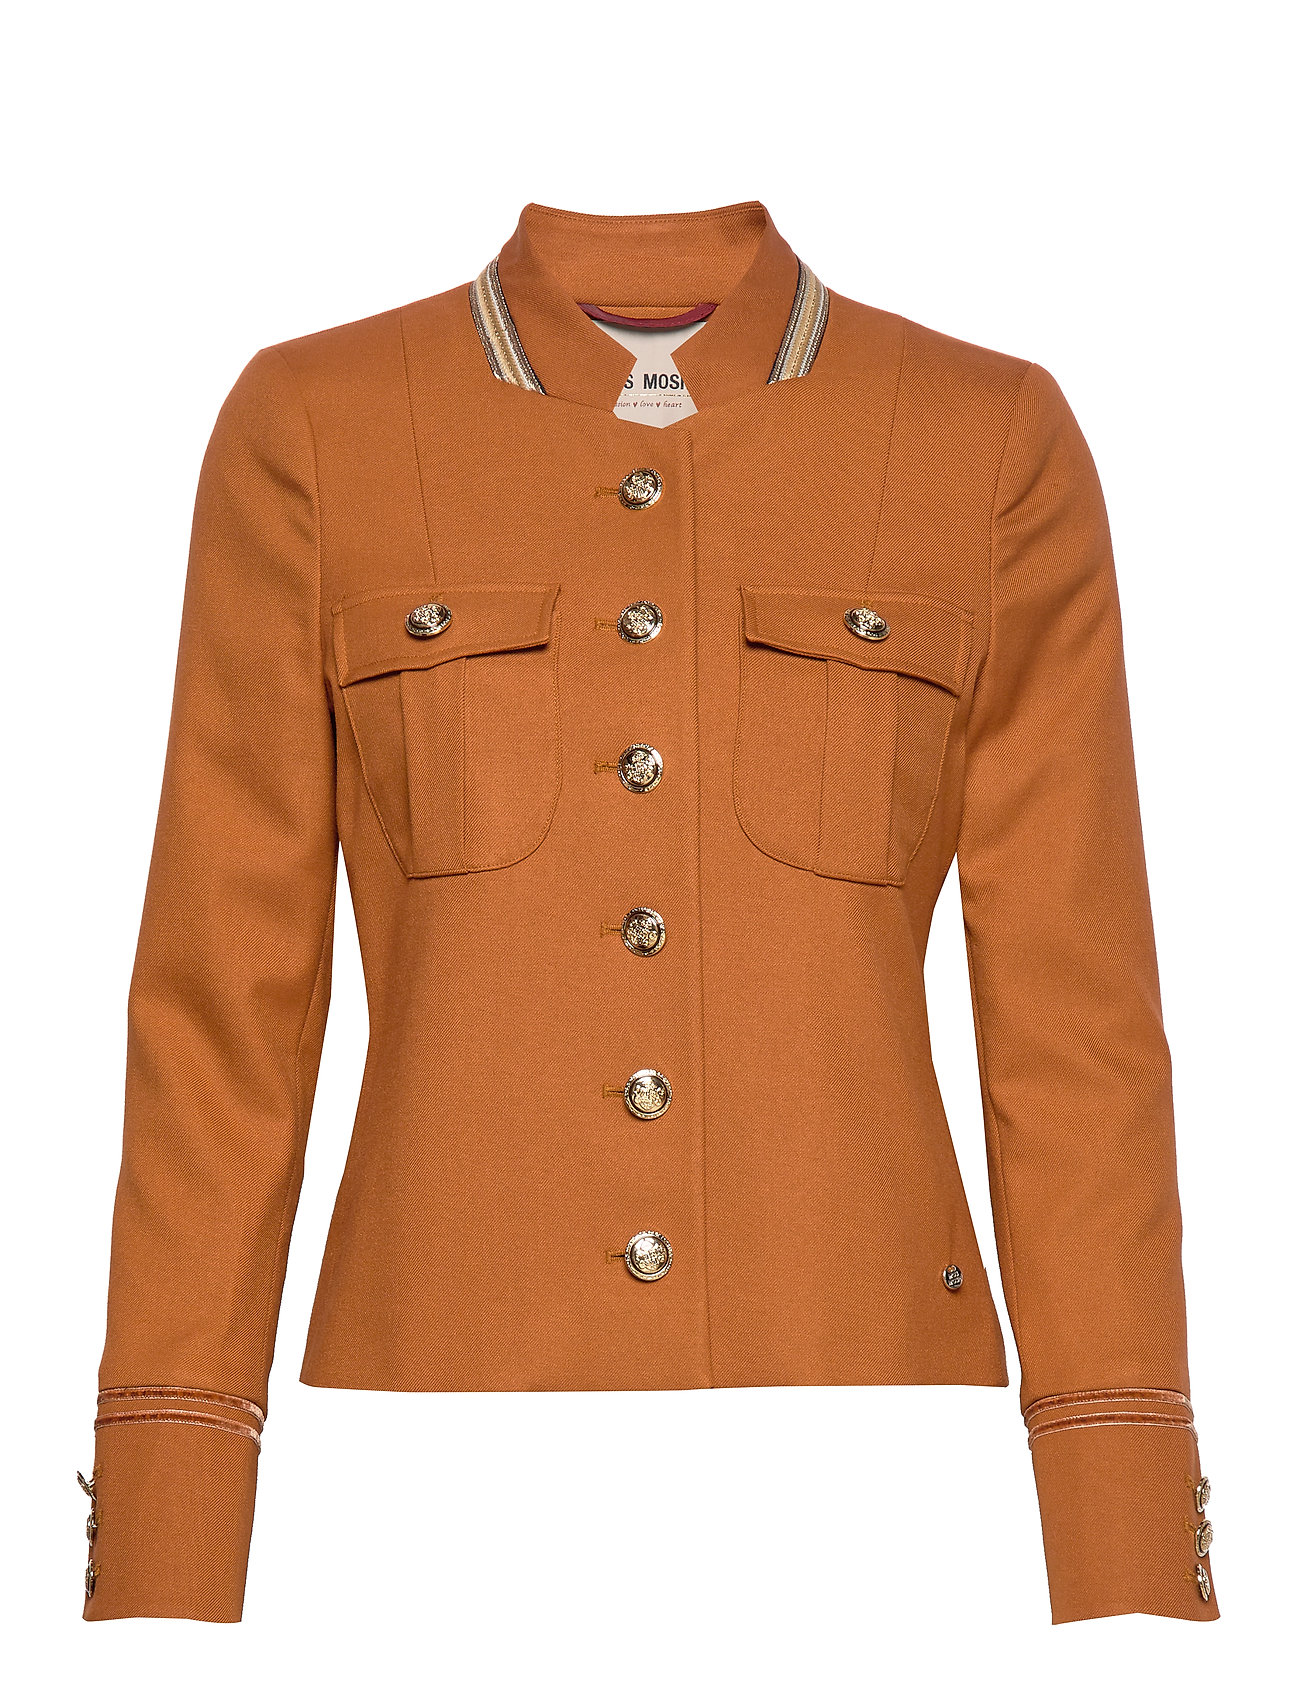 MOS MOSH Selby Twiggy Jacket - ROASTED PECAN